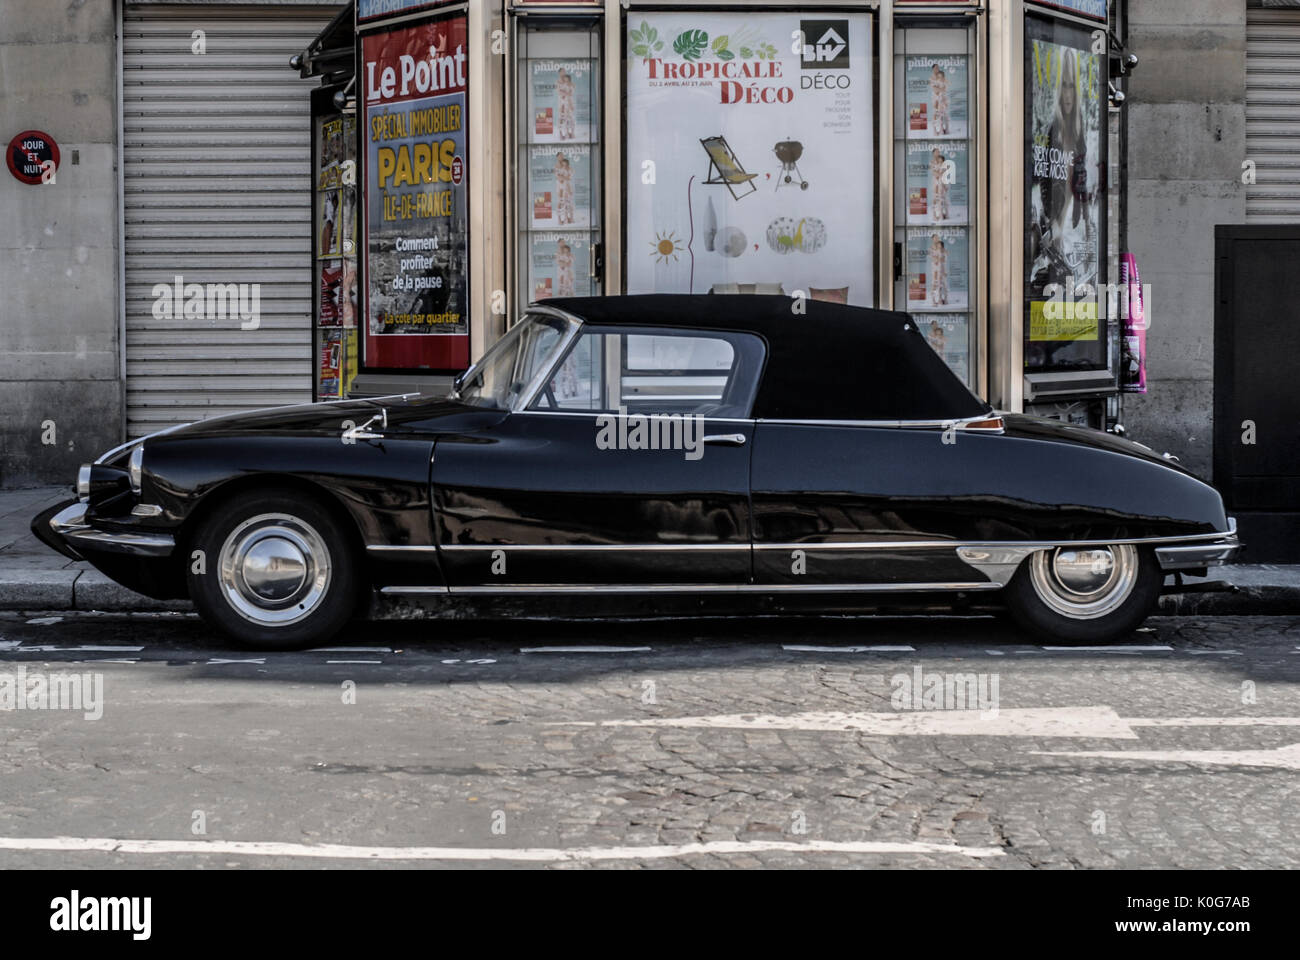 citroen ds convertible photos citroen ds convertible images alamy. Black Bedroom Furniture Sets. Home Design Ideas